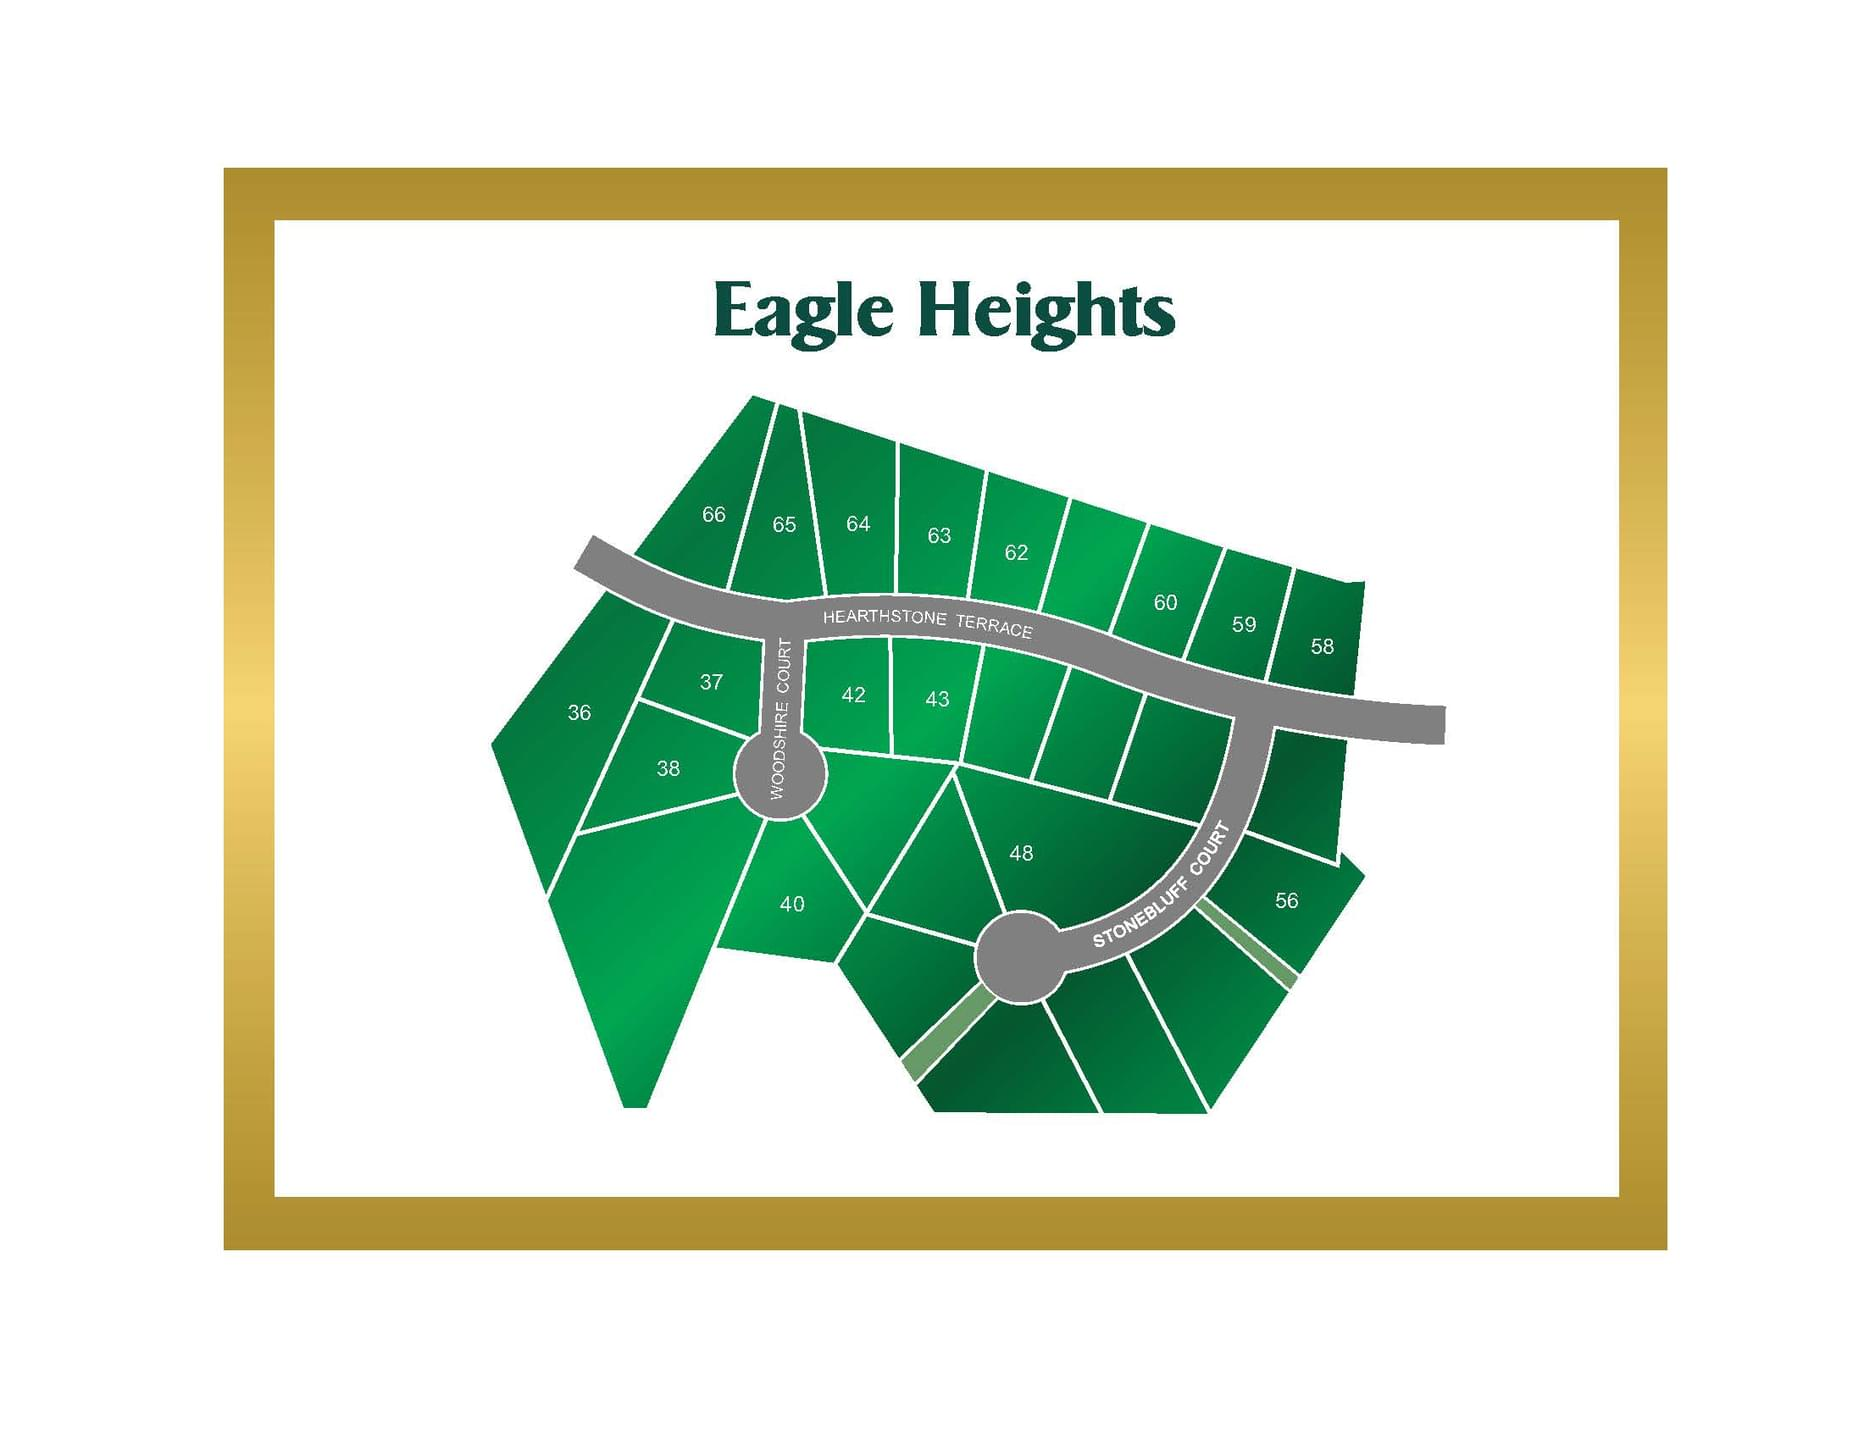 Eagle Heights - Siteplan Image